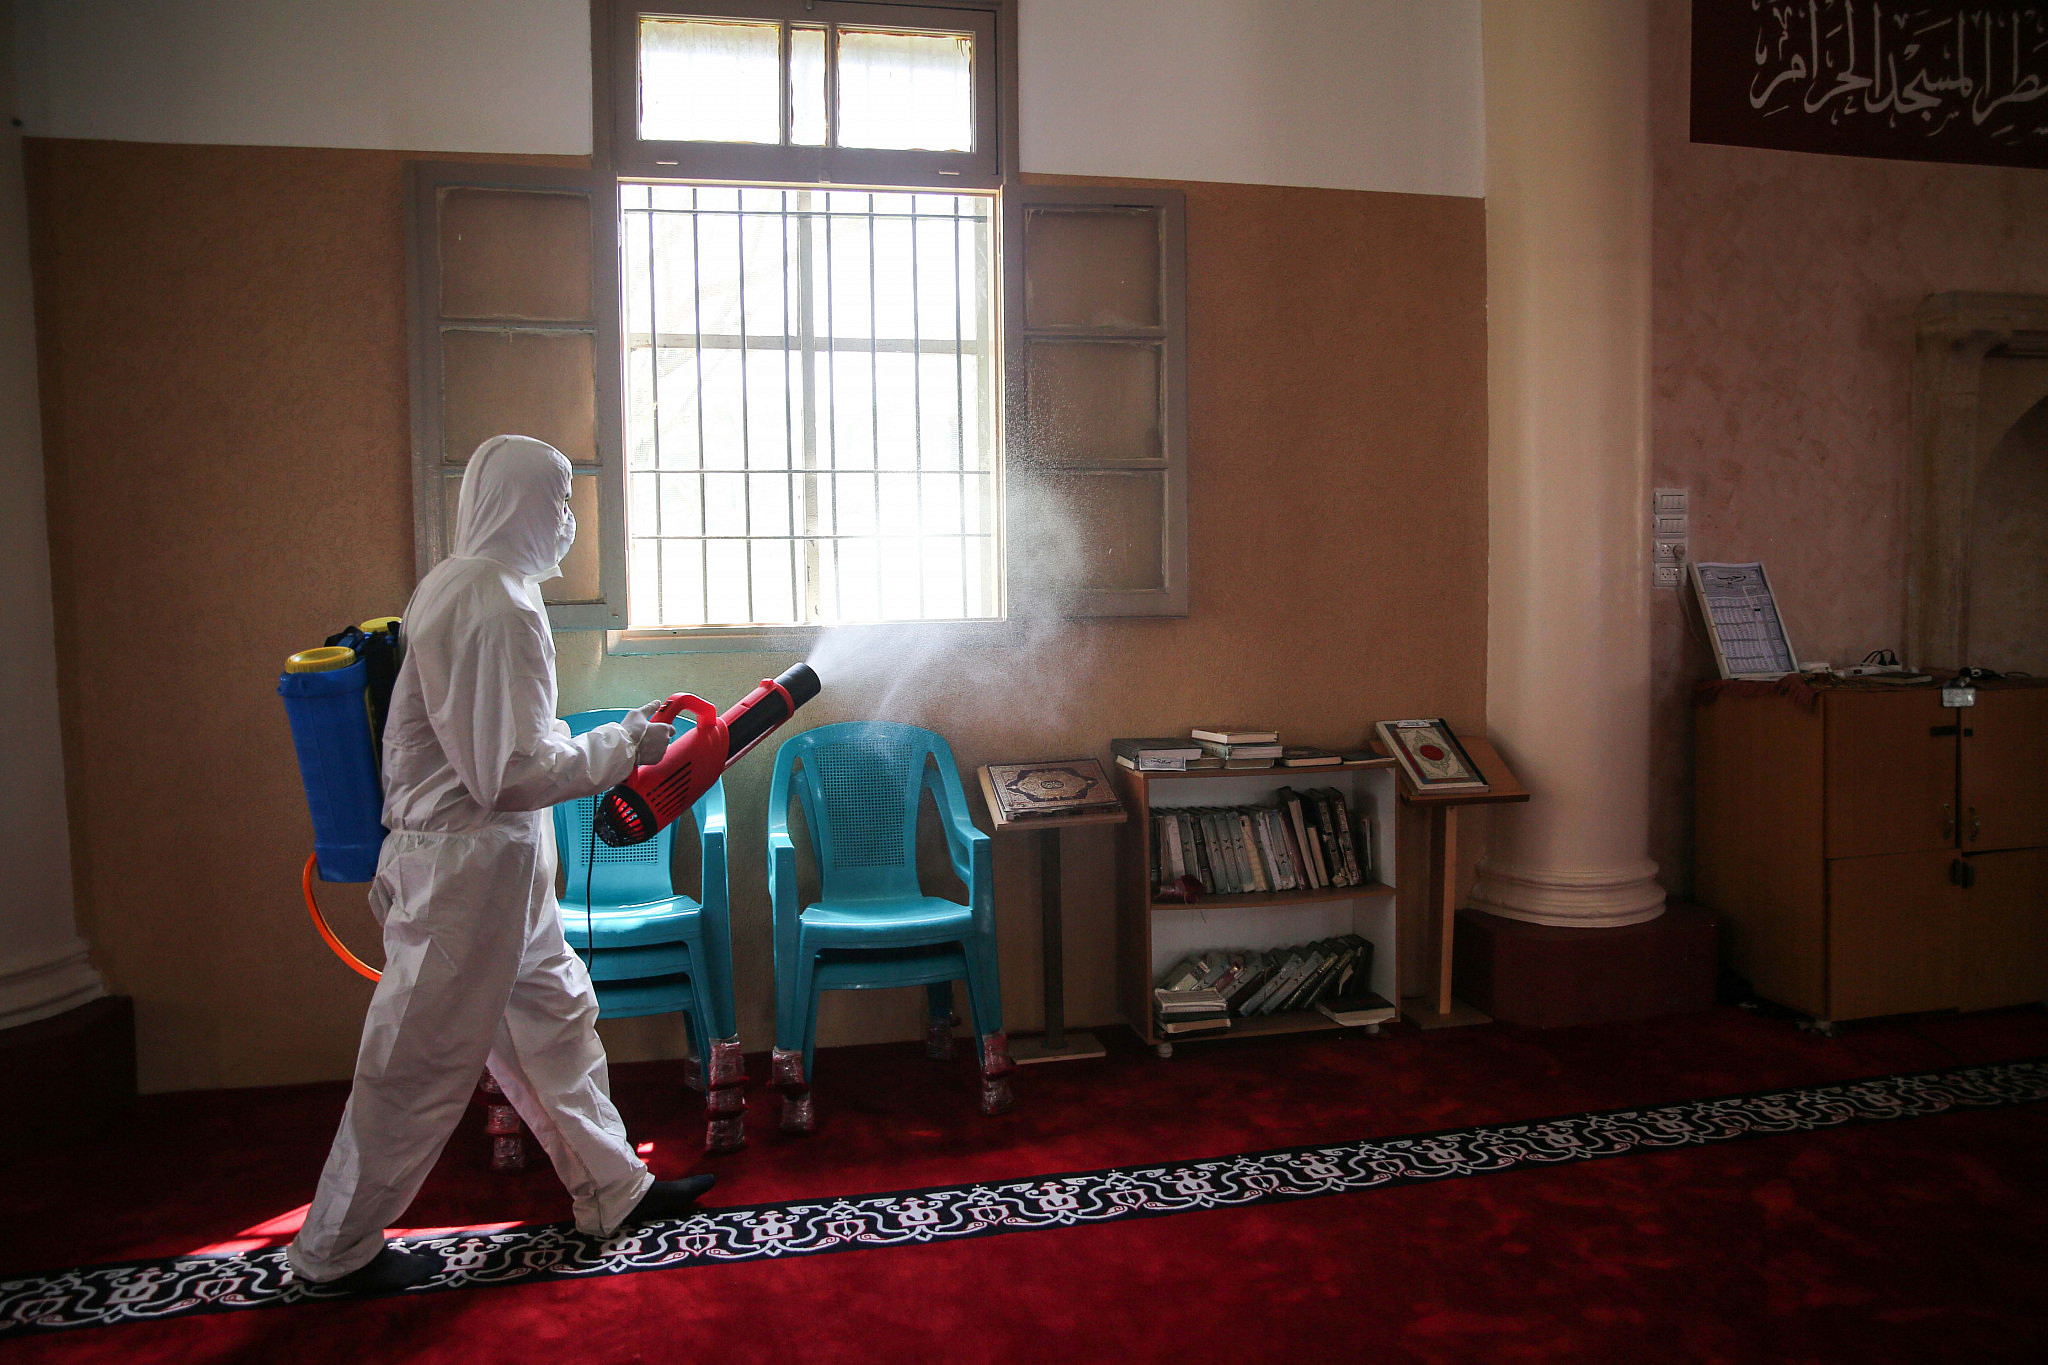 Palestinian health workers spray disinfectant as a precaution against the new coronavirus in Al-Omari Mosque in Gaza City, March 15, 2020. (Ali Ahmed/Flash90)